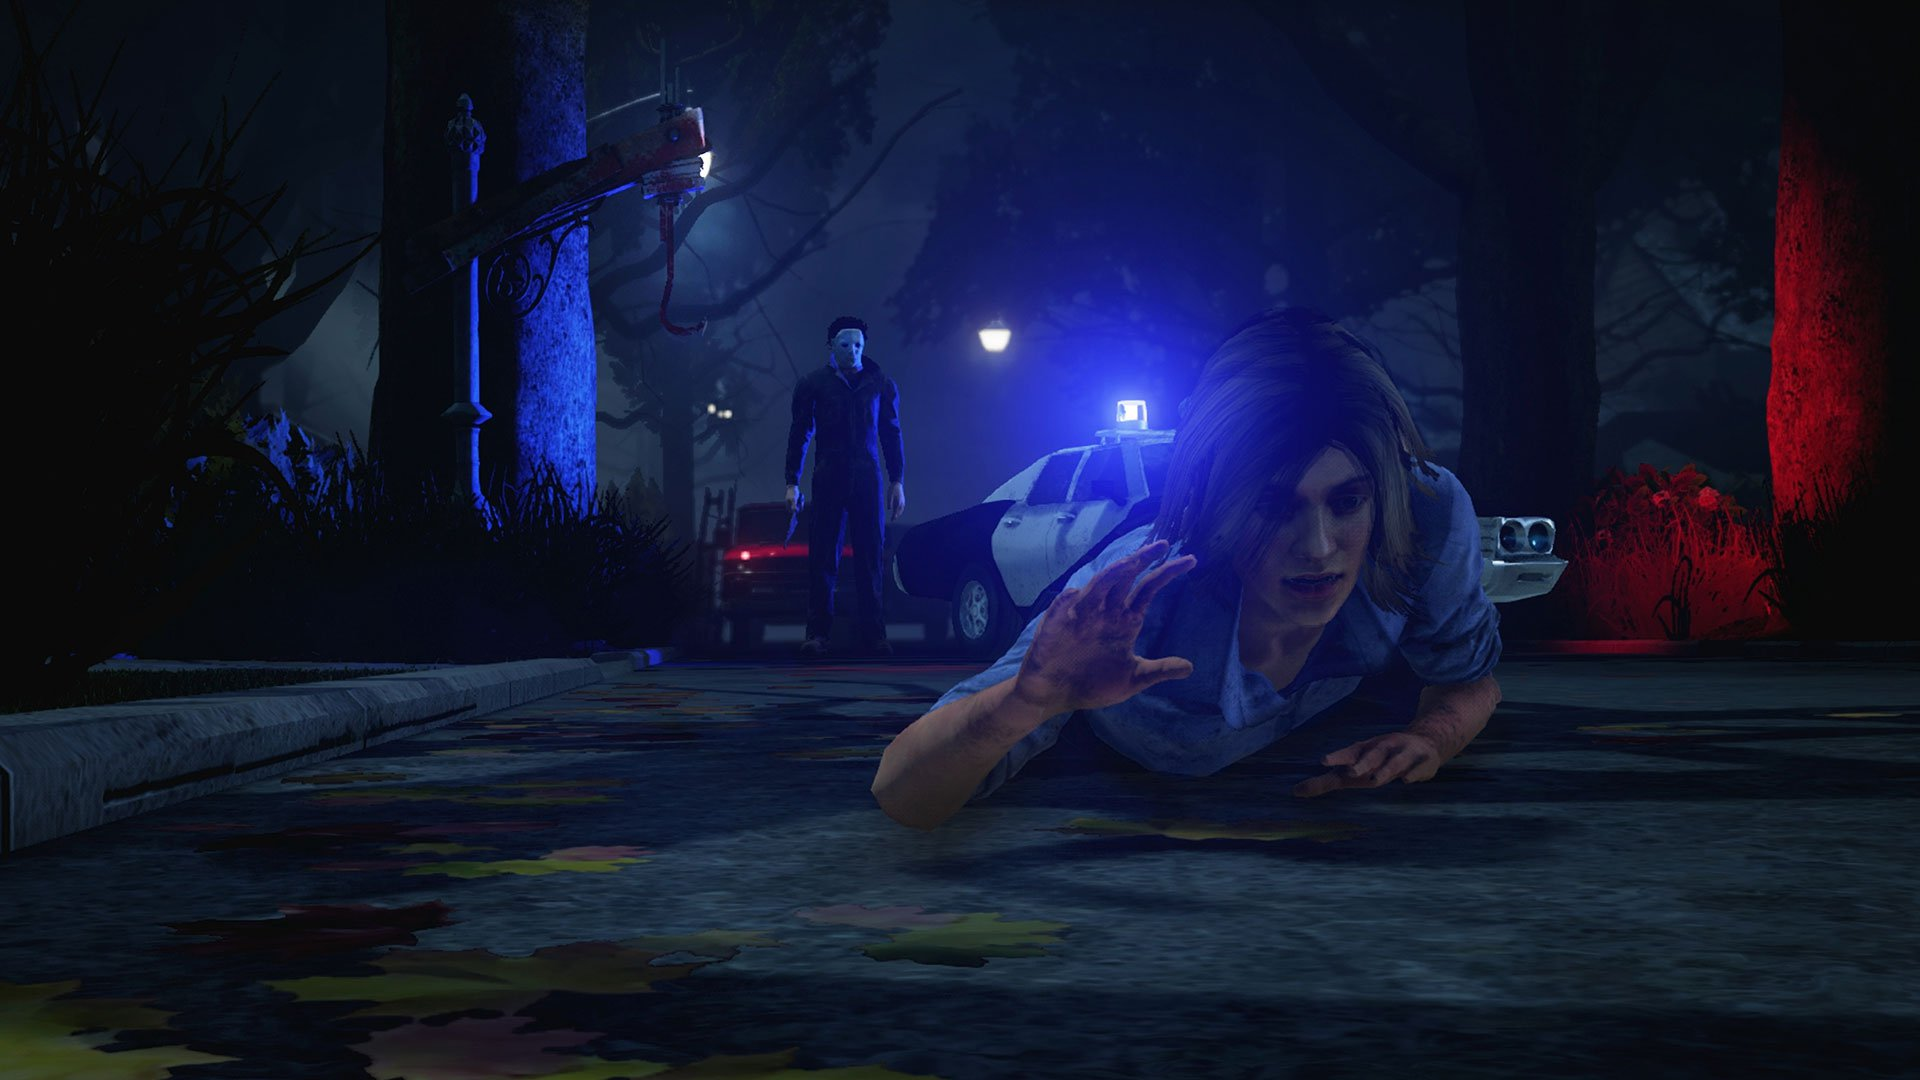 Halloween 2020 Michael Myers Dead? Michael Myers Joins 'Dead By Daylight   The Halloween Chapter